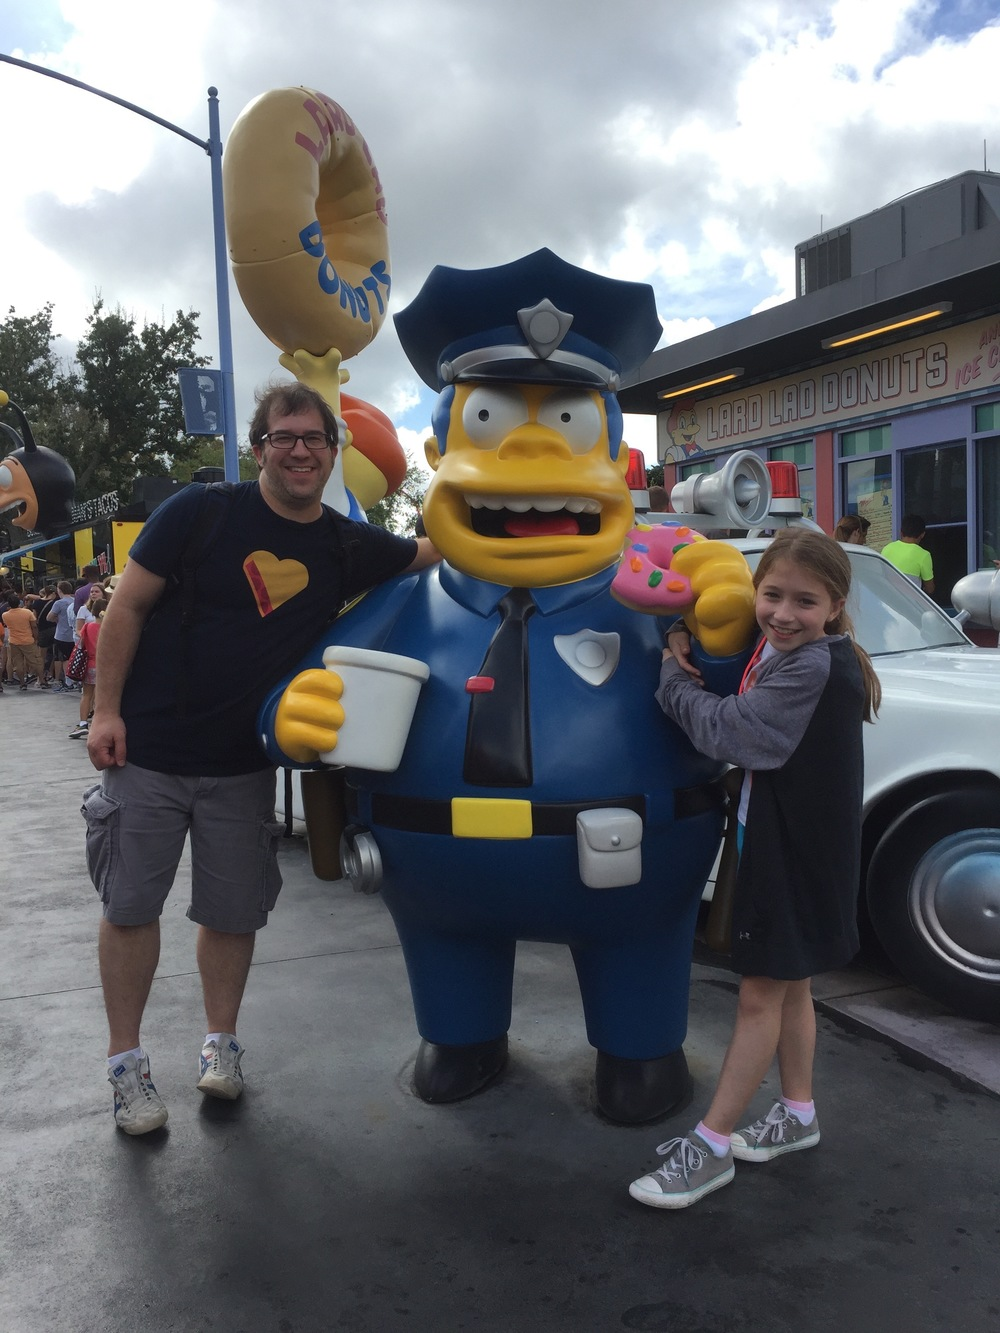 daughter_chiefWiggum.jpg